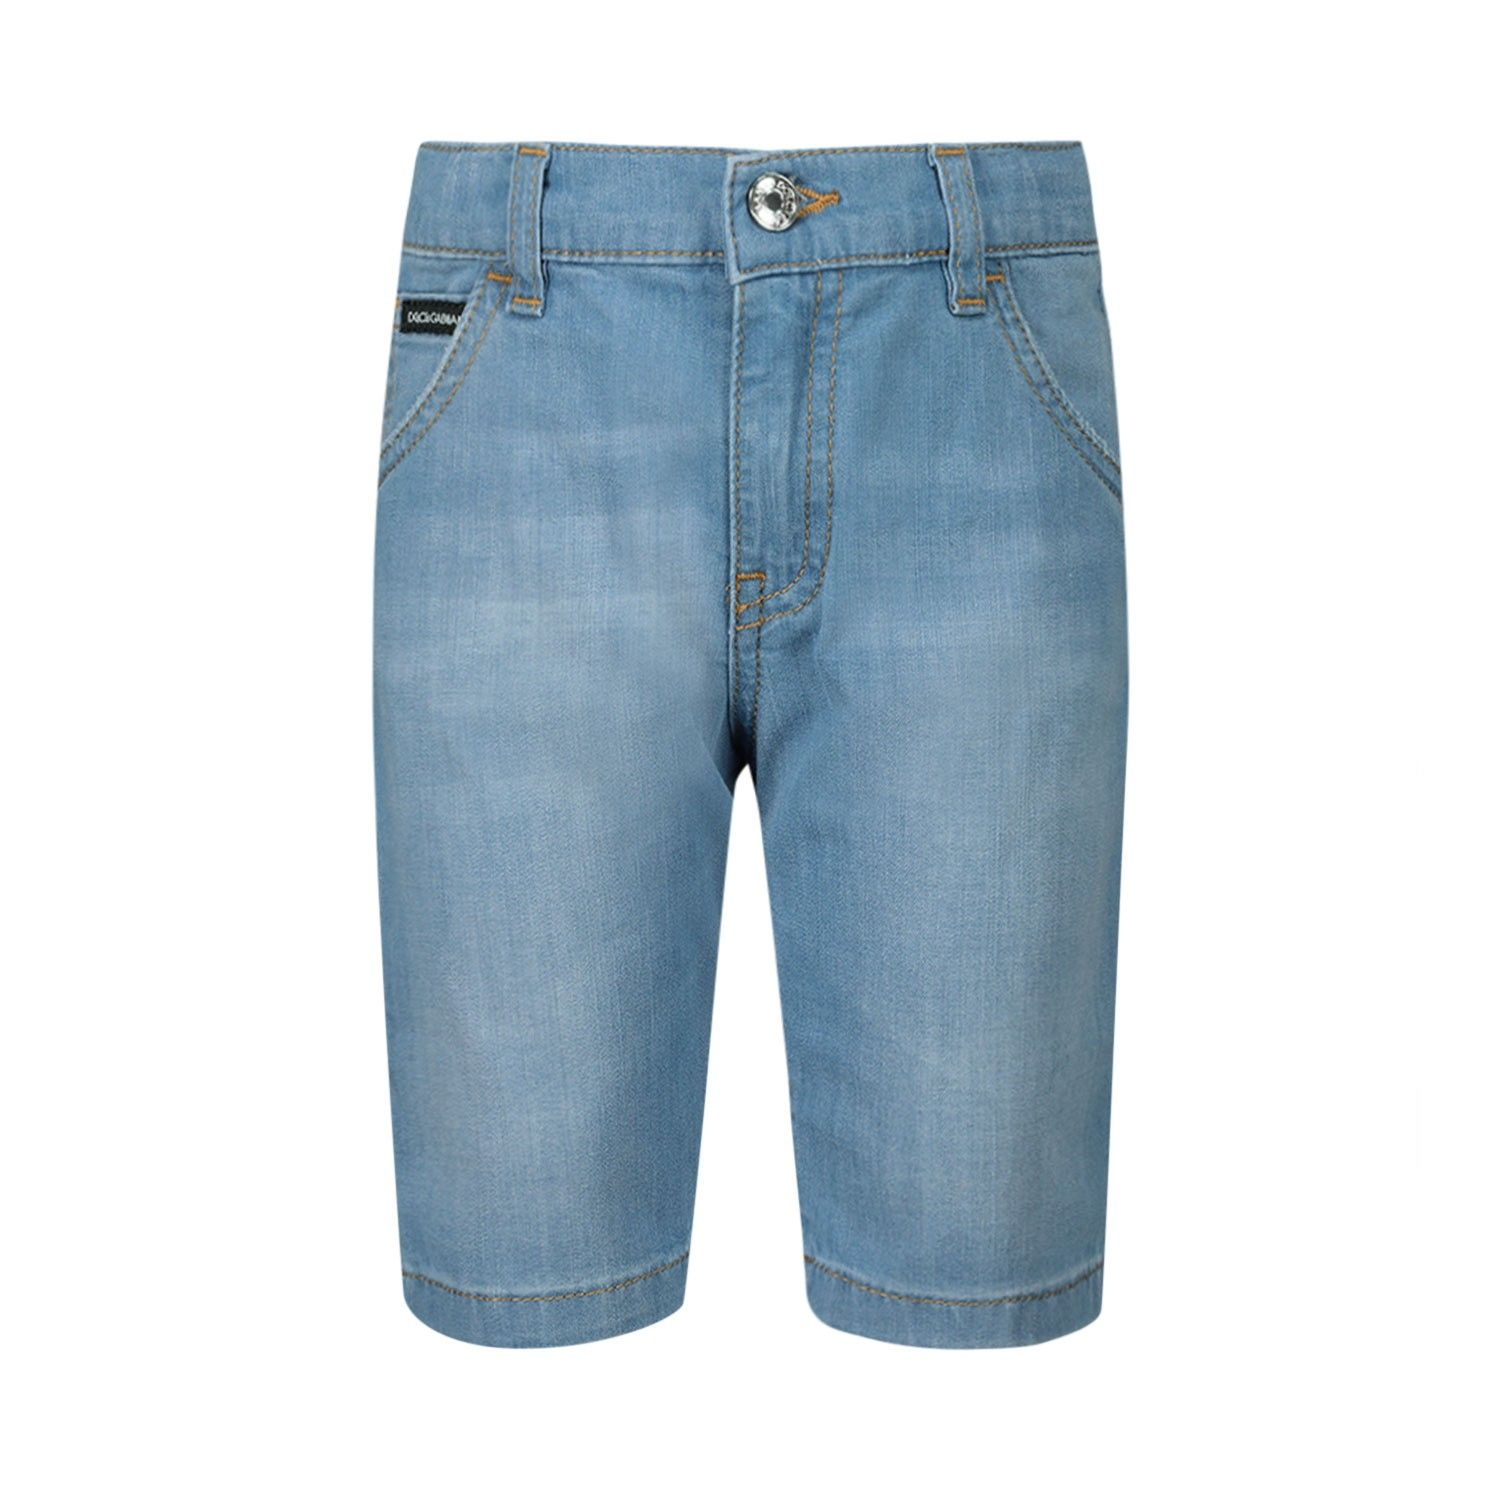 Afbeelding van Dolce & Gabbana L12Q36 / LD879 baby shorts jeans